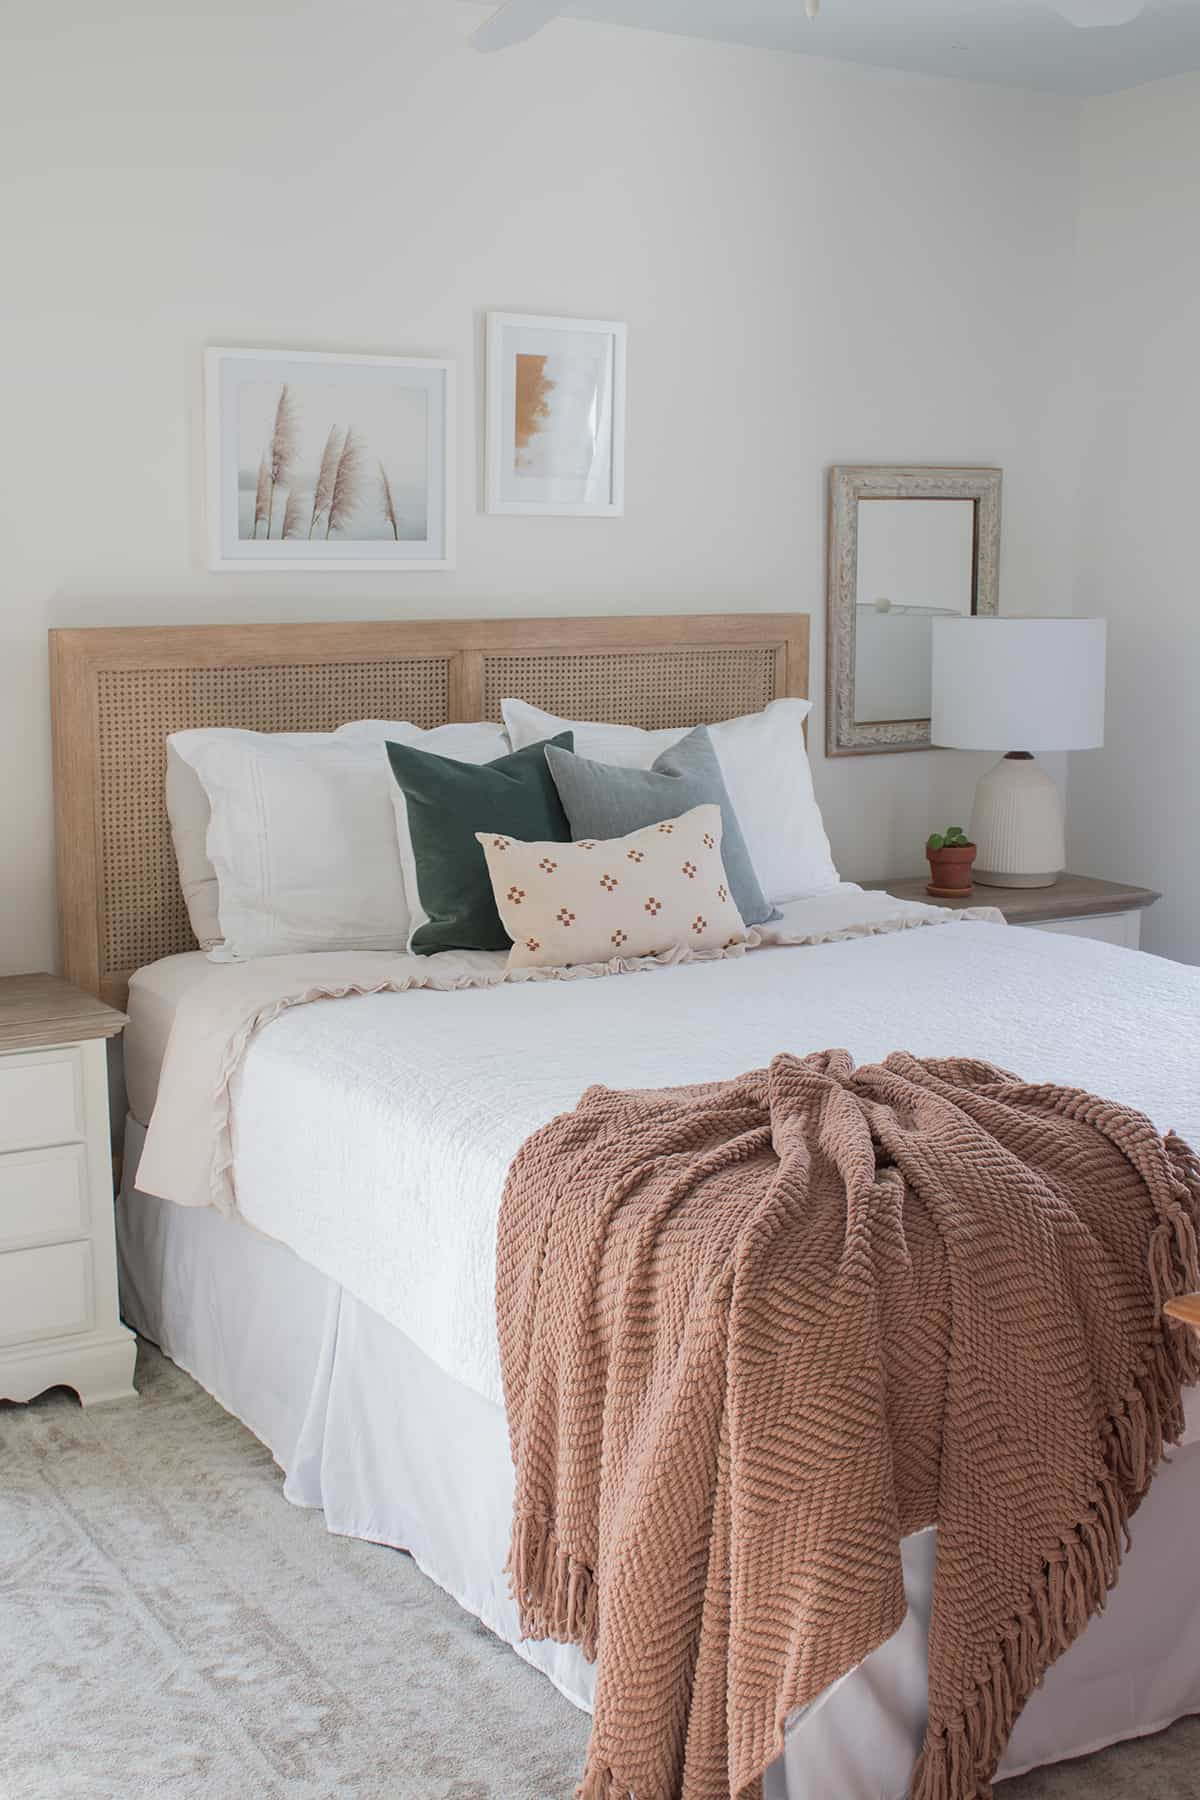 what-to-hang-over-bed-in-master-bedroom-ideas